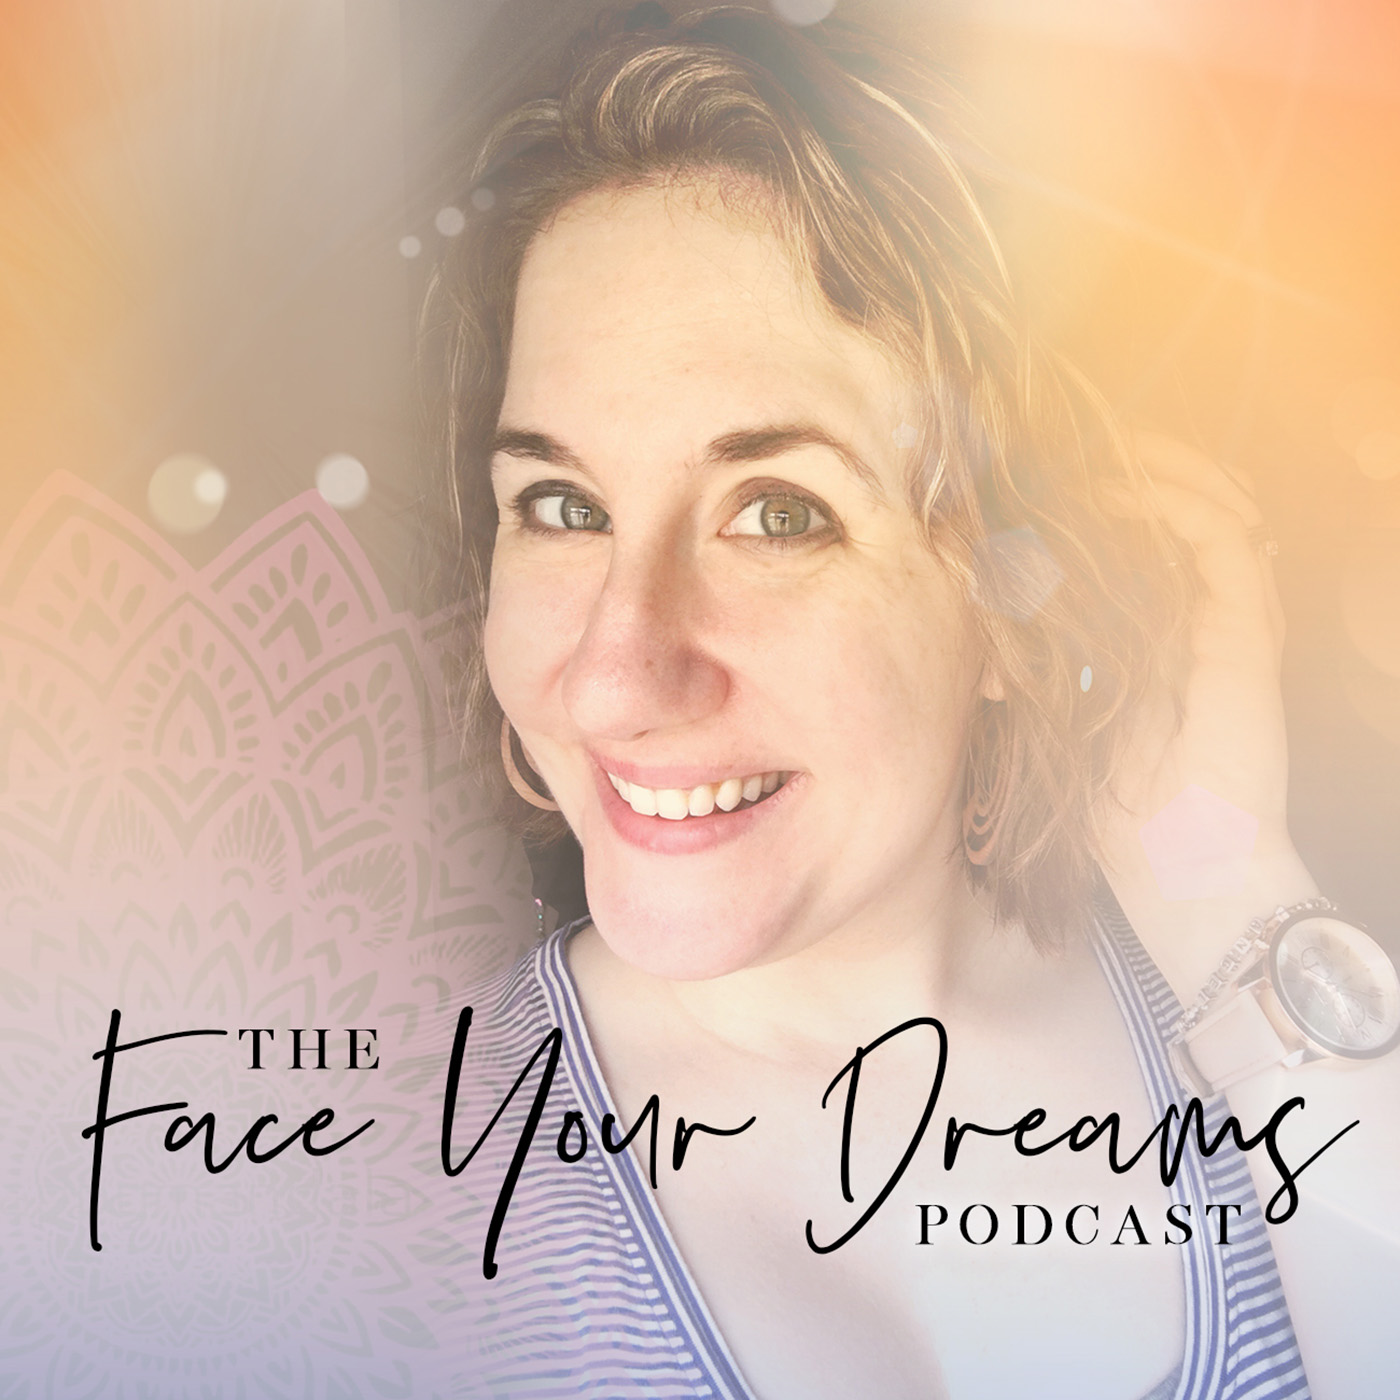 The Face Your Dreams Podcast